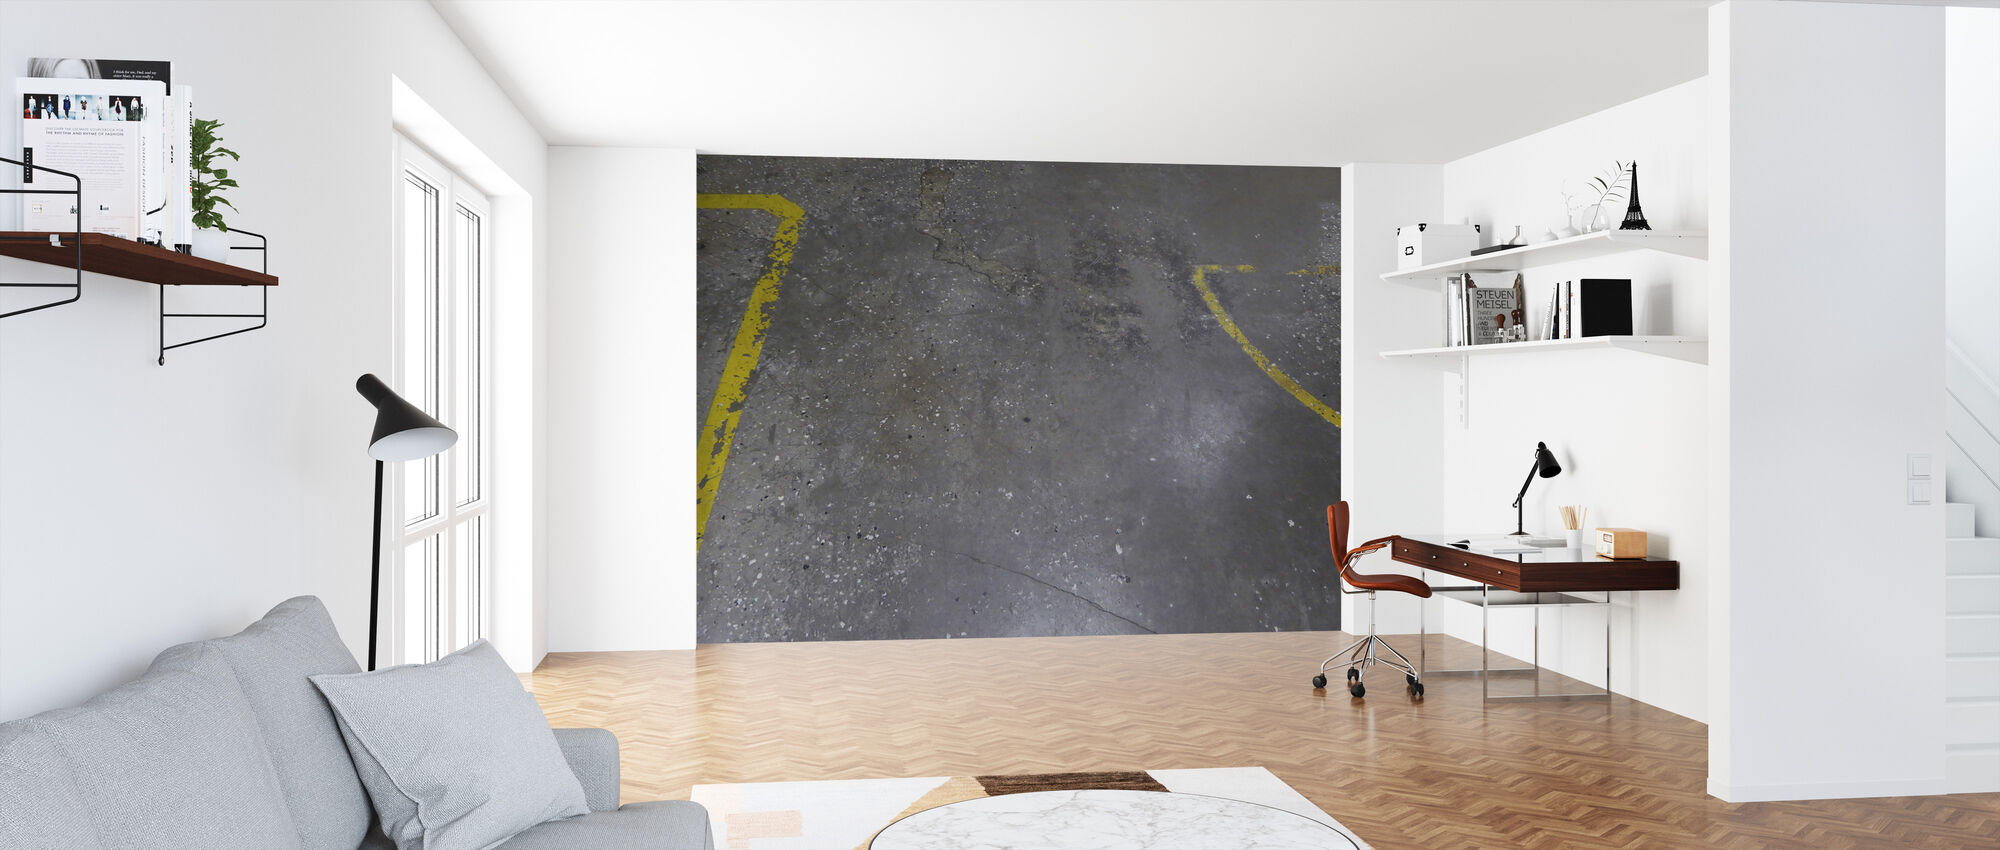 Concrete Floor on Wall 4 - Wallpaper - Office